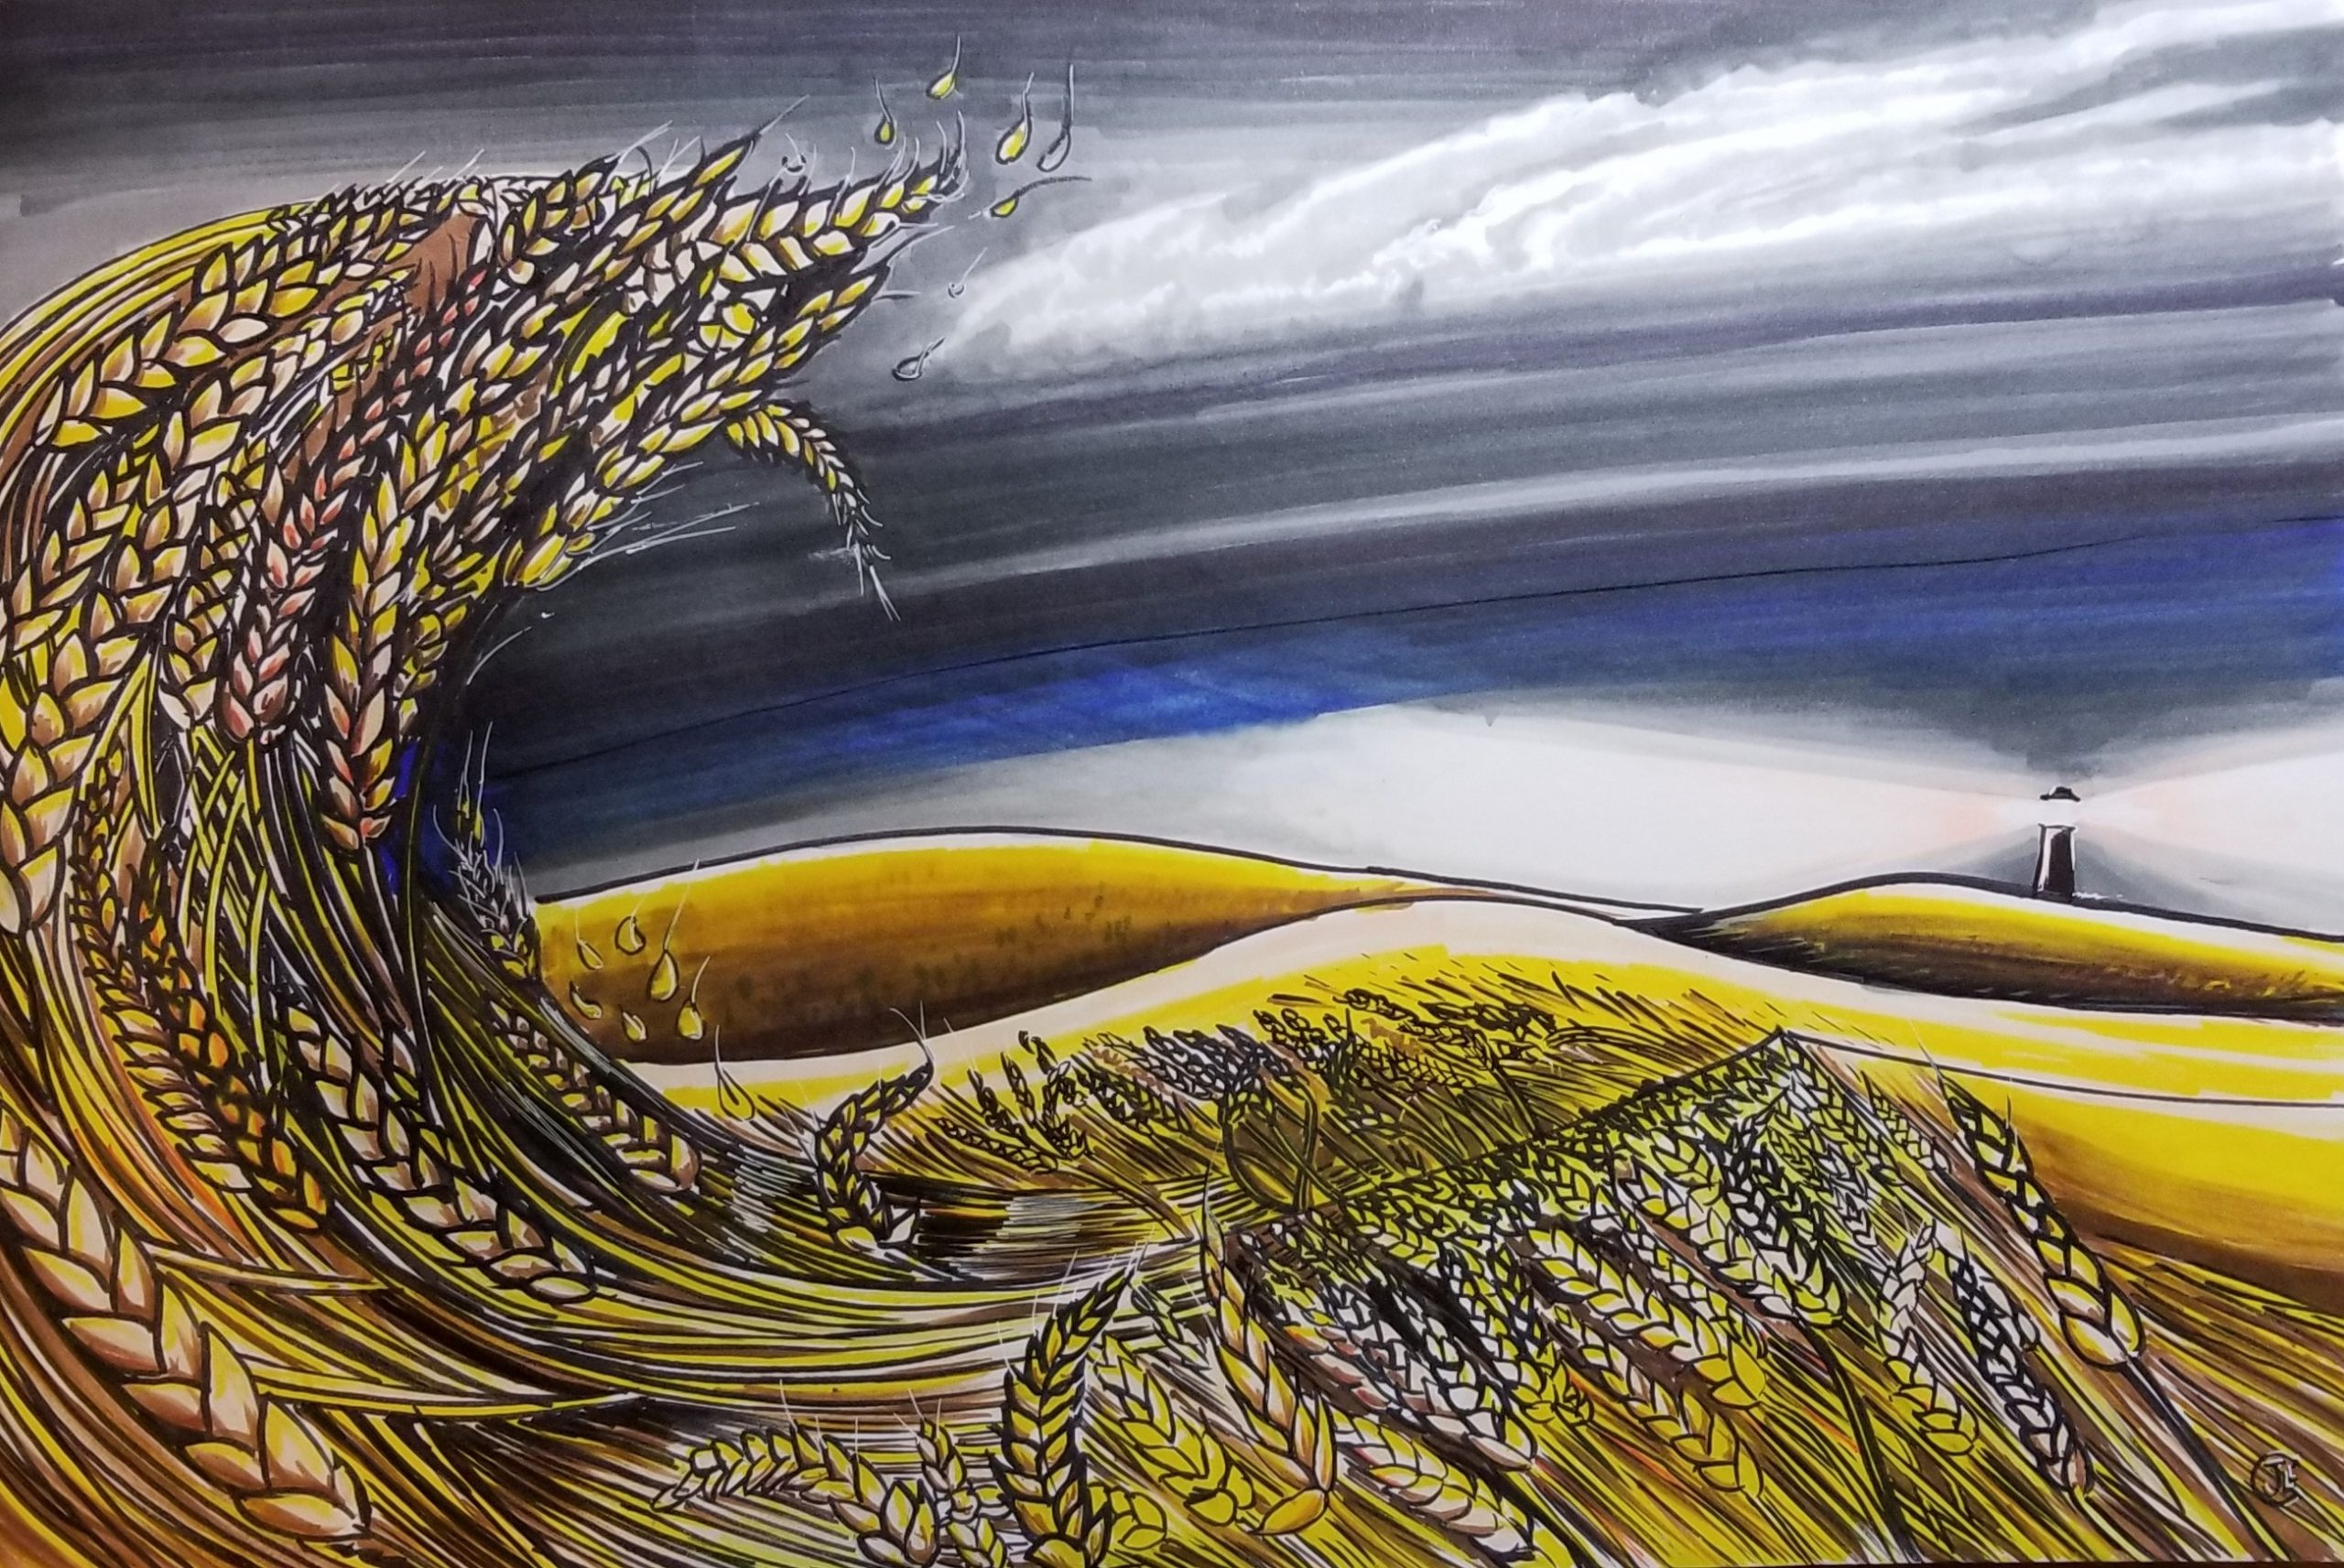 Waves Of Grain Illustration Pen and Ink